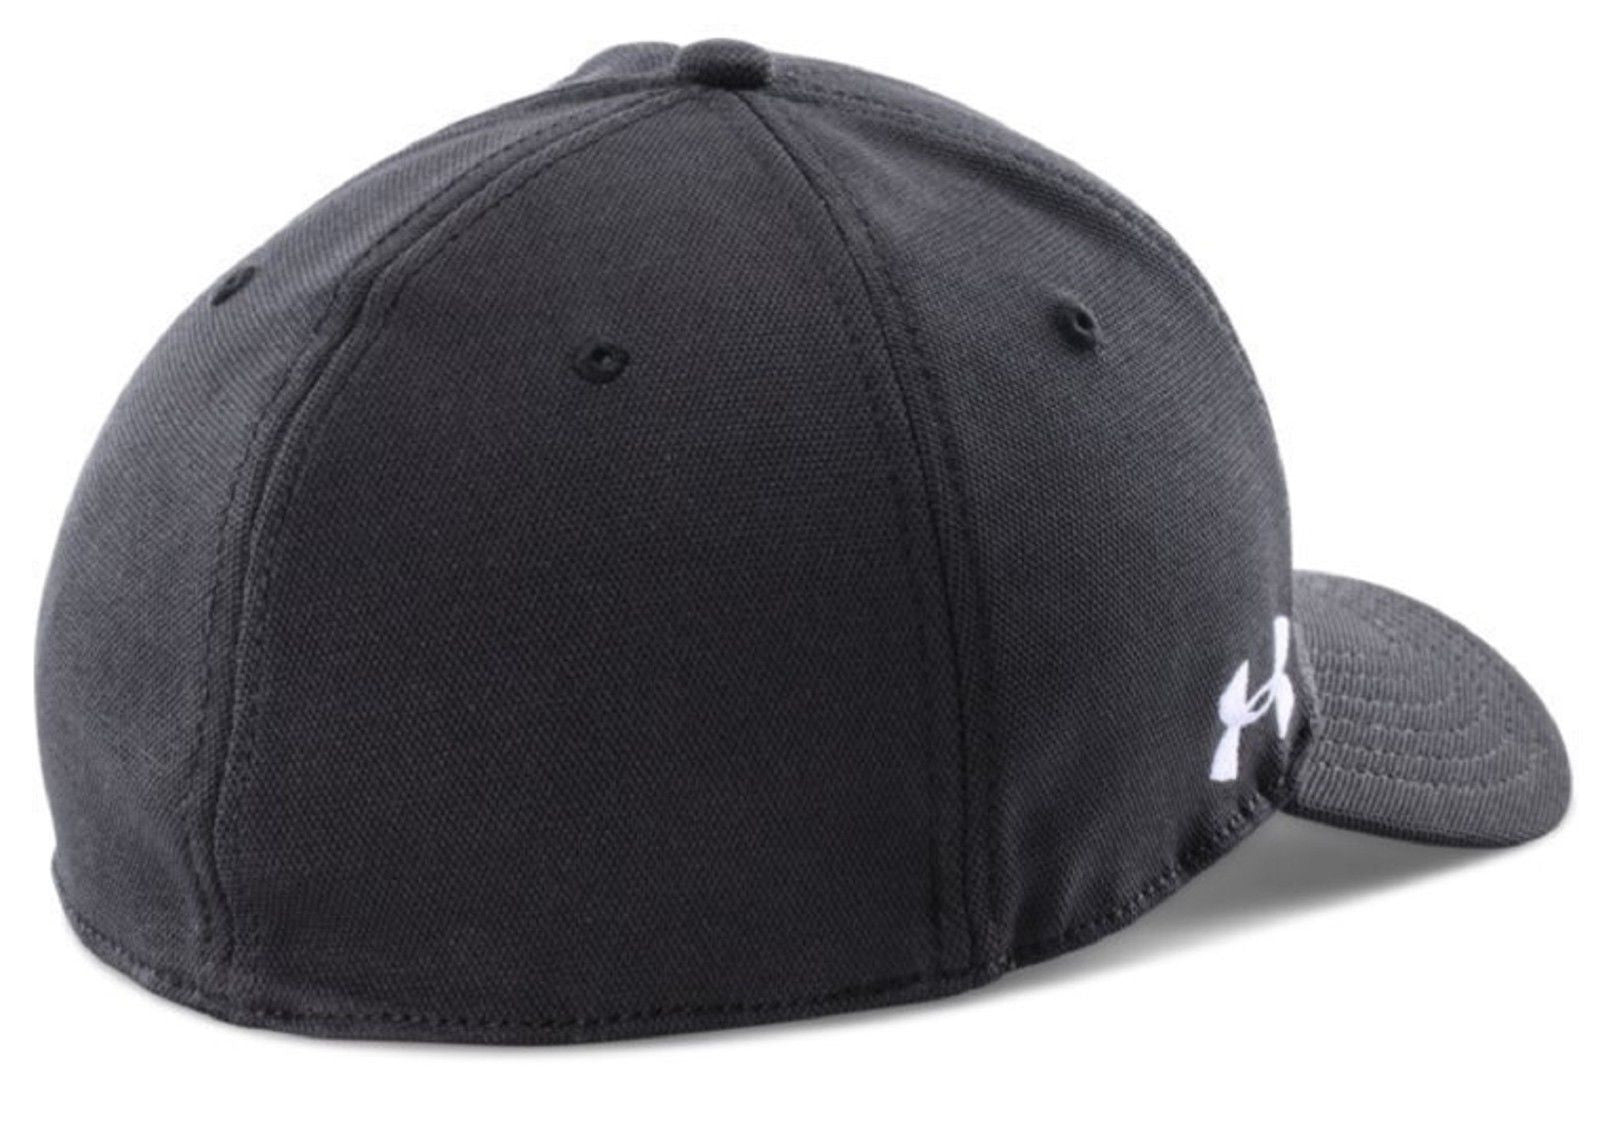 ... Under Armour Wounded Warrior Stretch-Fit Cap - Black UA WWP Flex Fitted  Hat ... 8156a856176